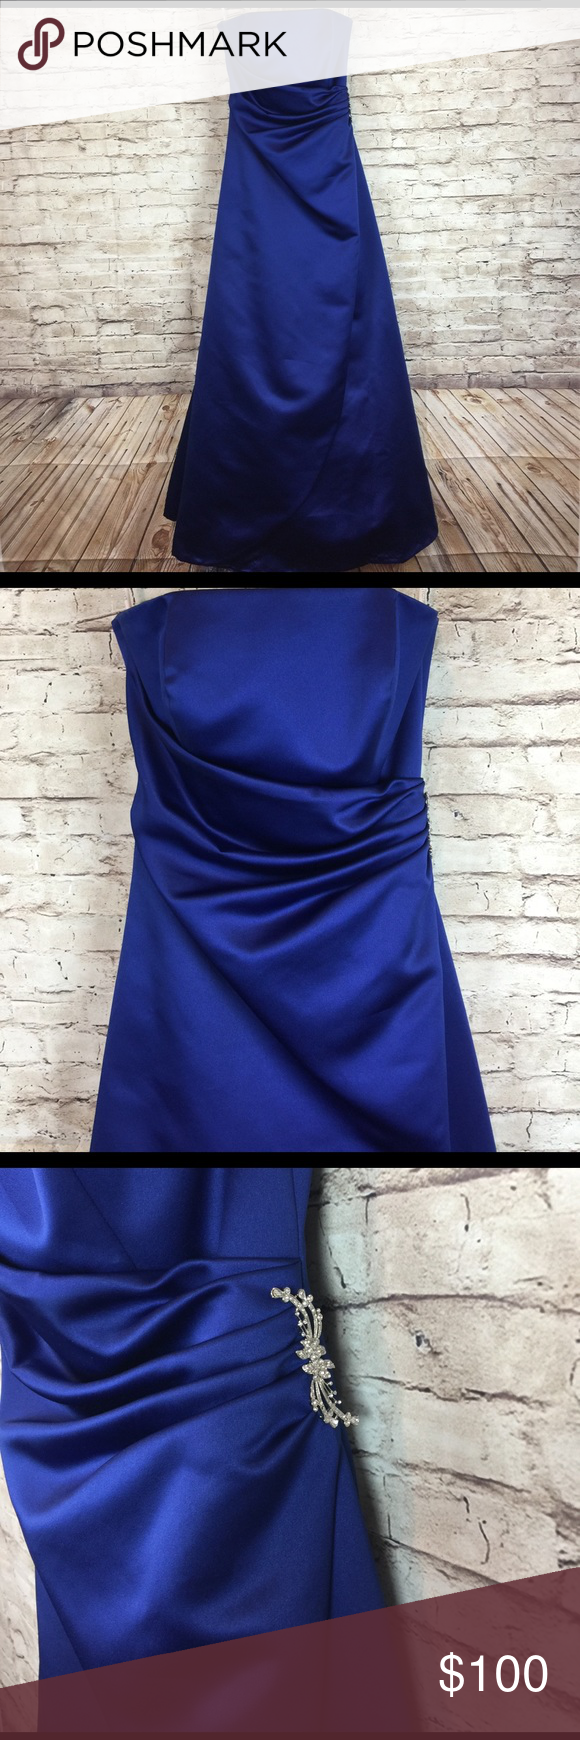 David's Bridal Royal Blue Strapless Gown Beautiful David's Bridal Royal Blue Strapless Gown. Flawless. View photos for details. Perfect for a bridesmaid gown or for a formal event. David's Bridal Dresses Strapless